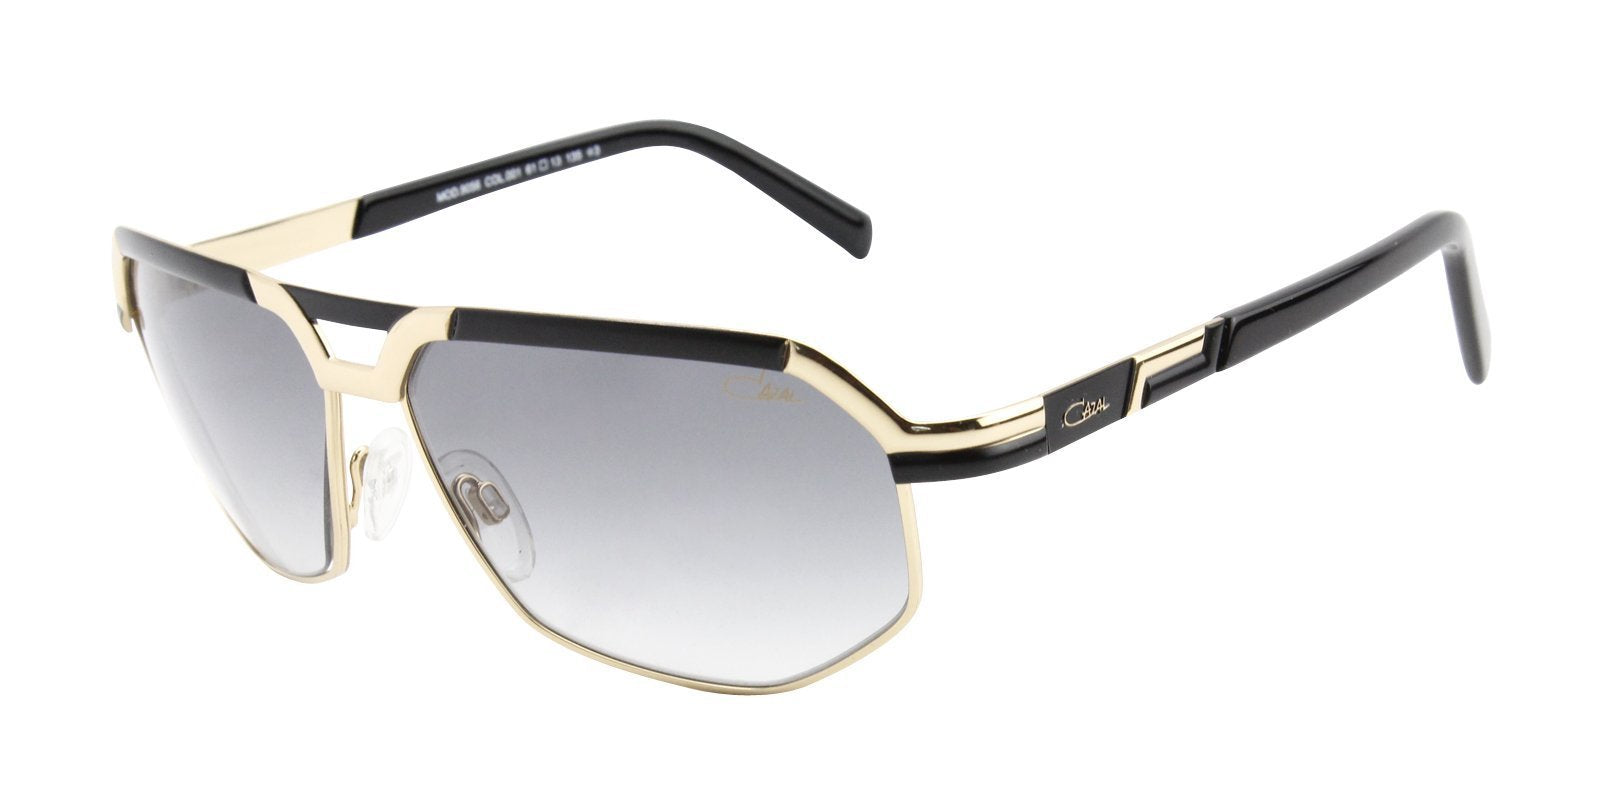 Cazal CZ9056 Gold / Gray Lens Sunglasses-Sunglasses-Designer Eyes